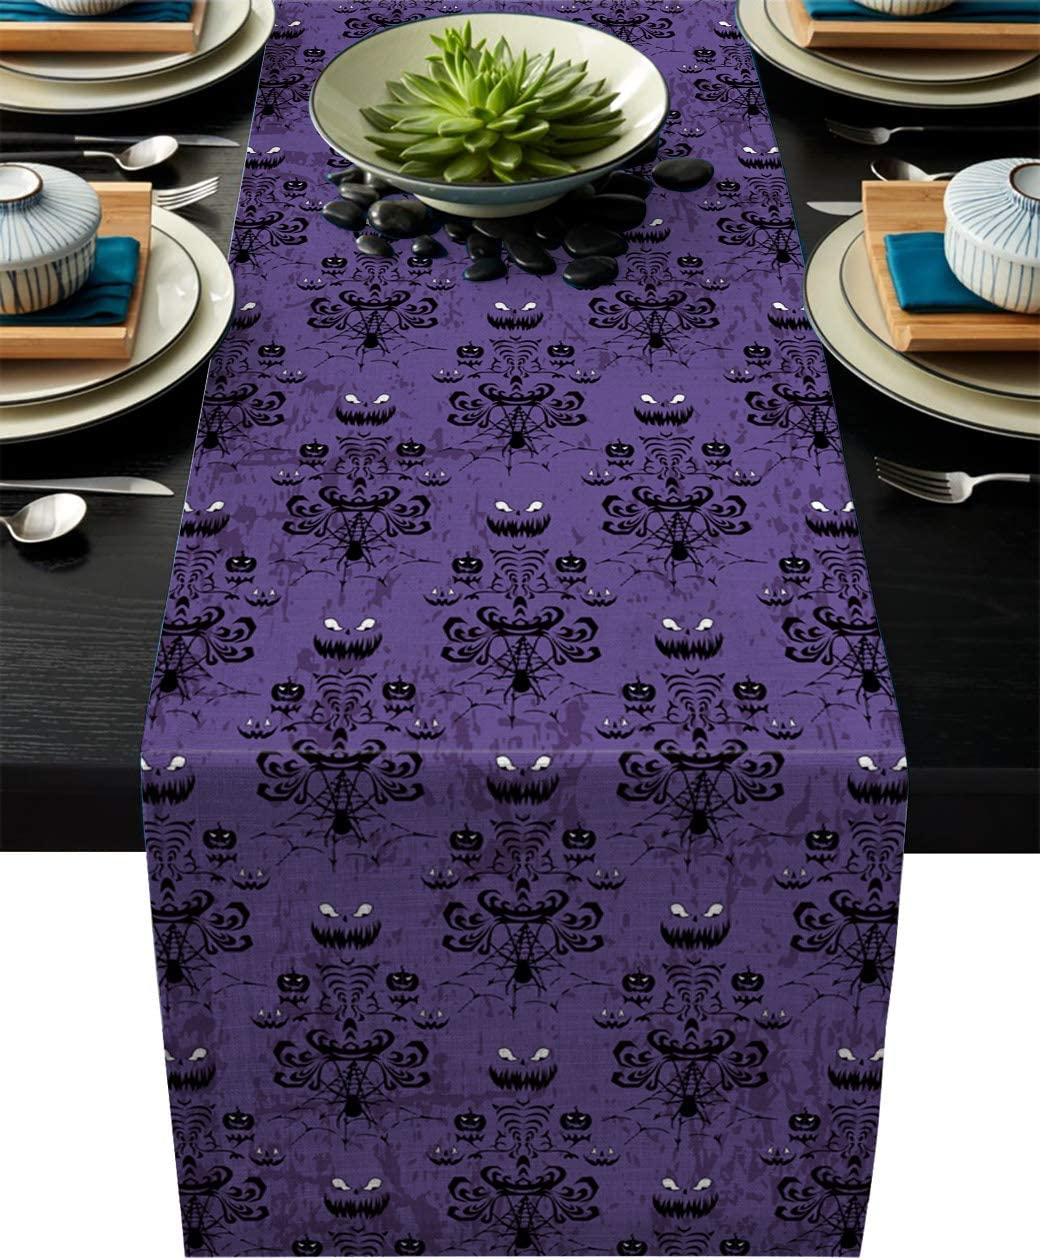 Halloween Burlap Table Runner 70 Inches Long,Halloween Decor Ghost Face Purple Pattern Linen Dinner Table Setting Decor for Wedding Gatherings Party Baby Shower